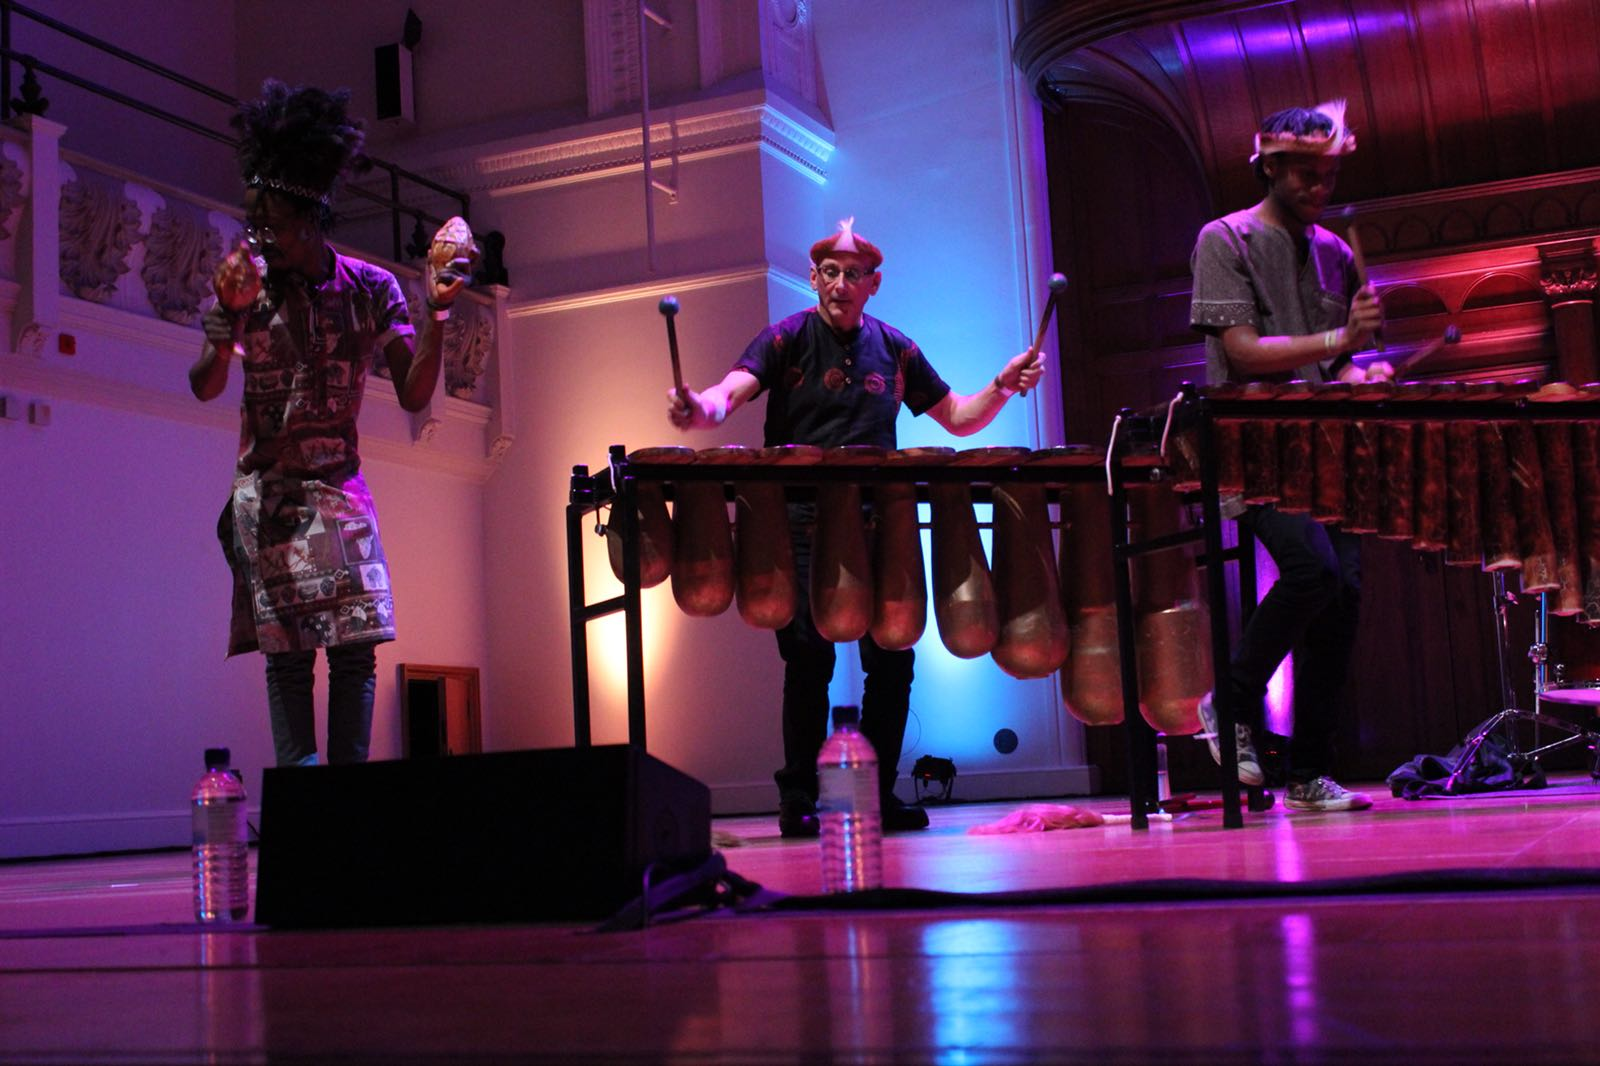 Cadogan Hall London - Panafrik - Otto Gumaelius & Taste of Southern Africa Marimba Band 4.JPG